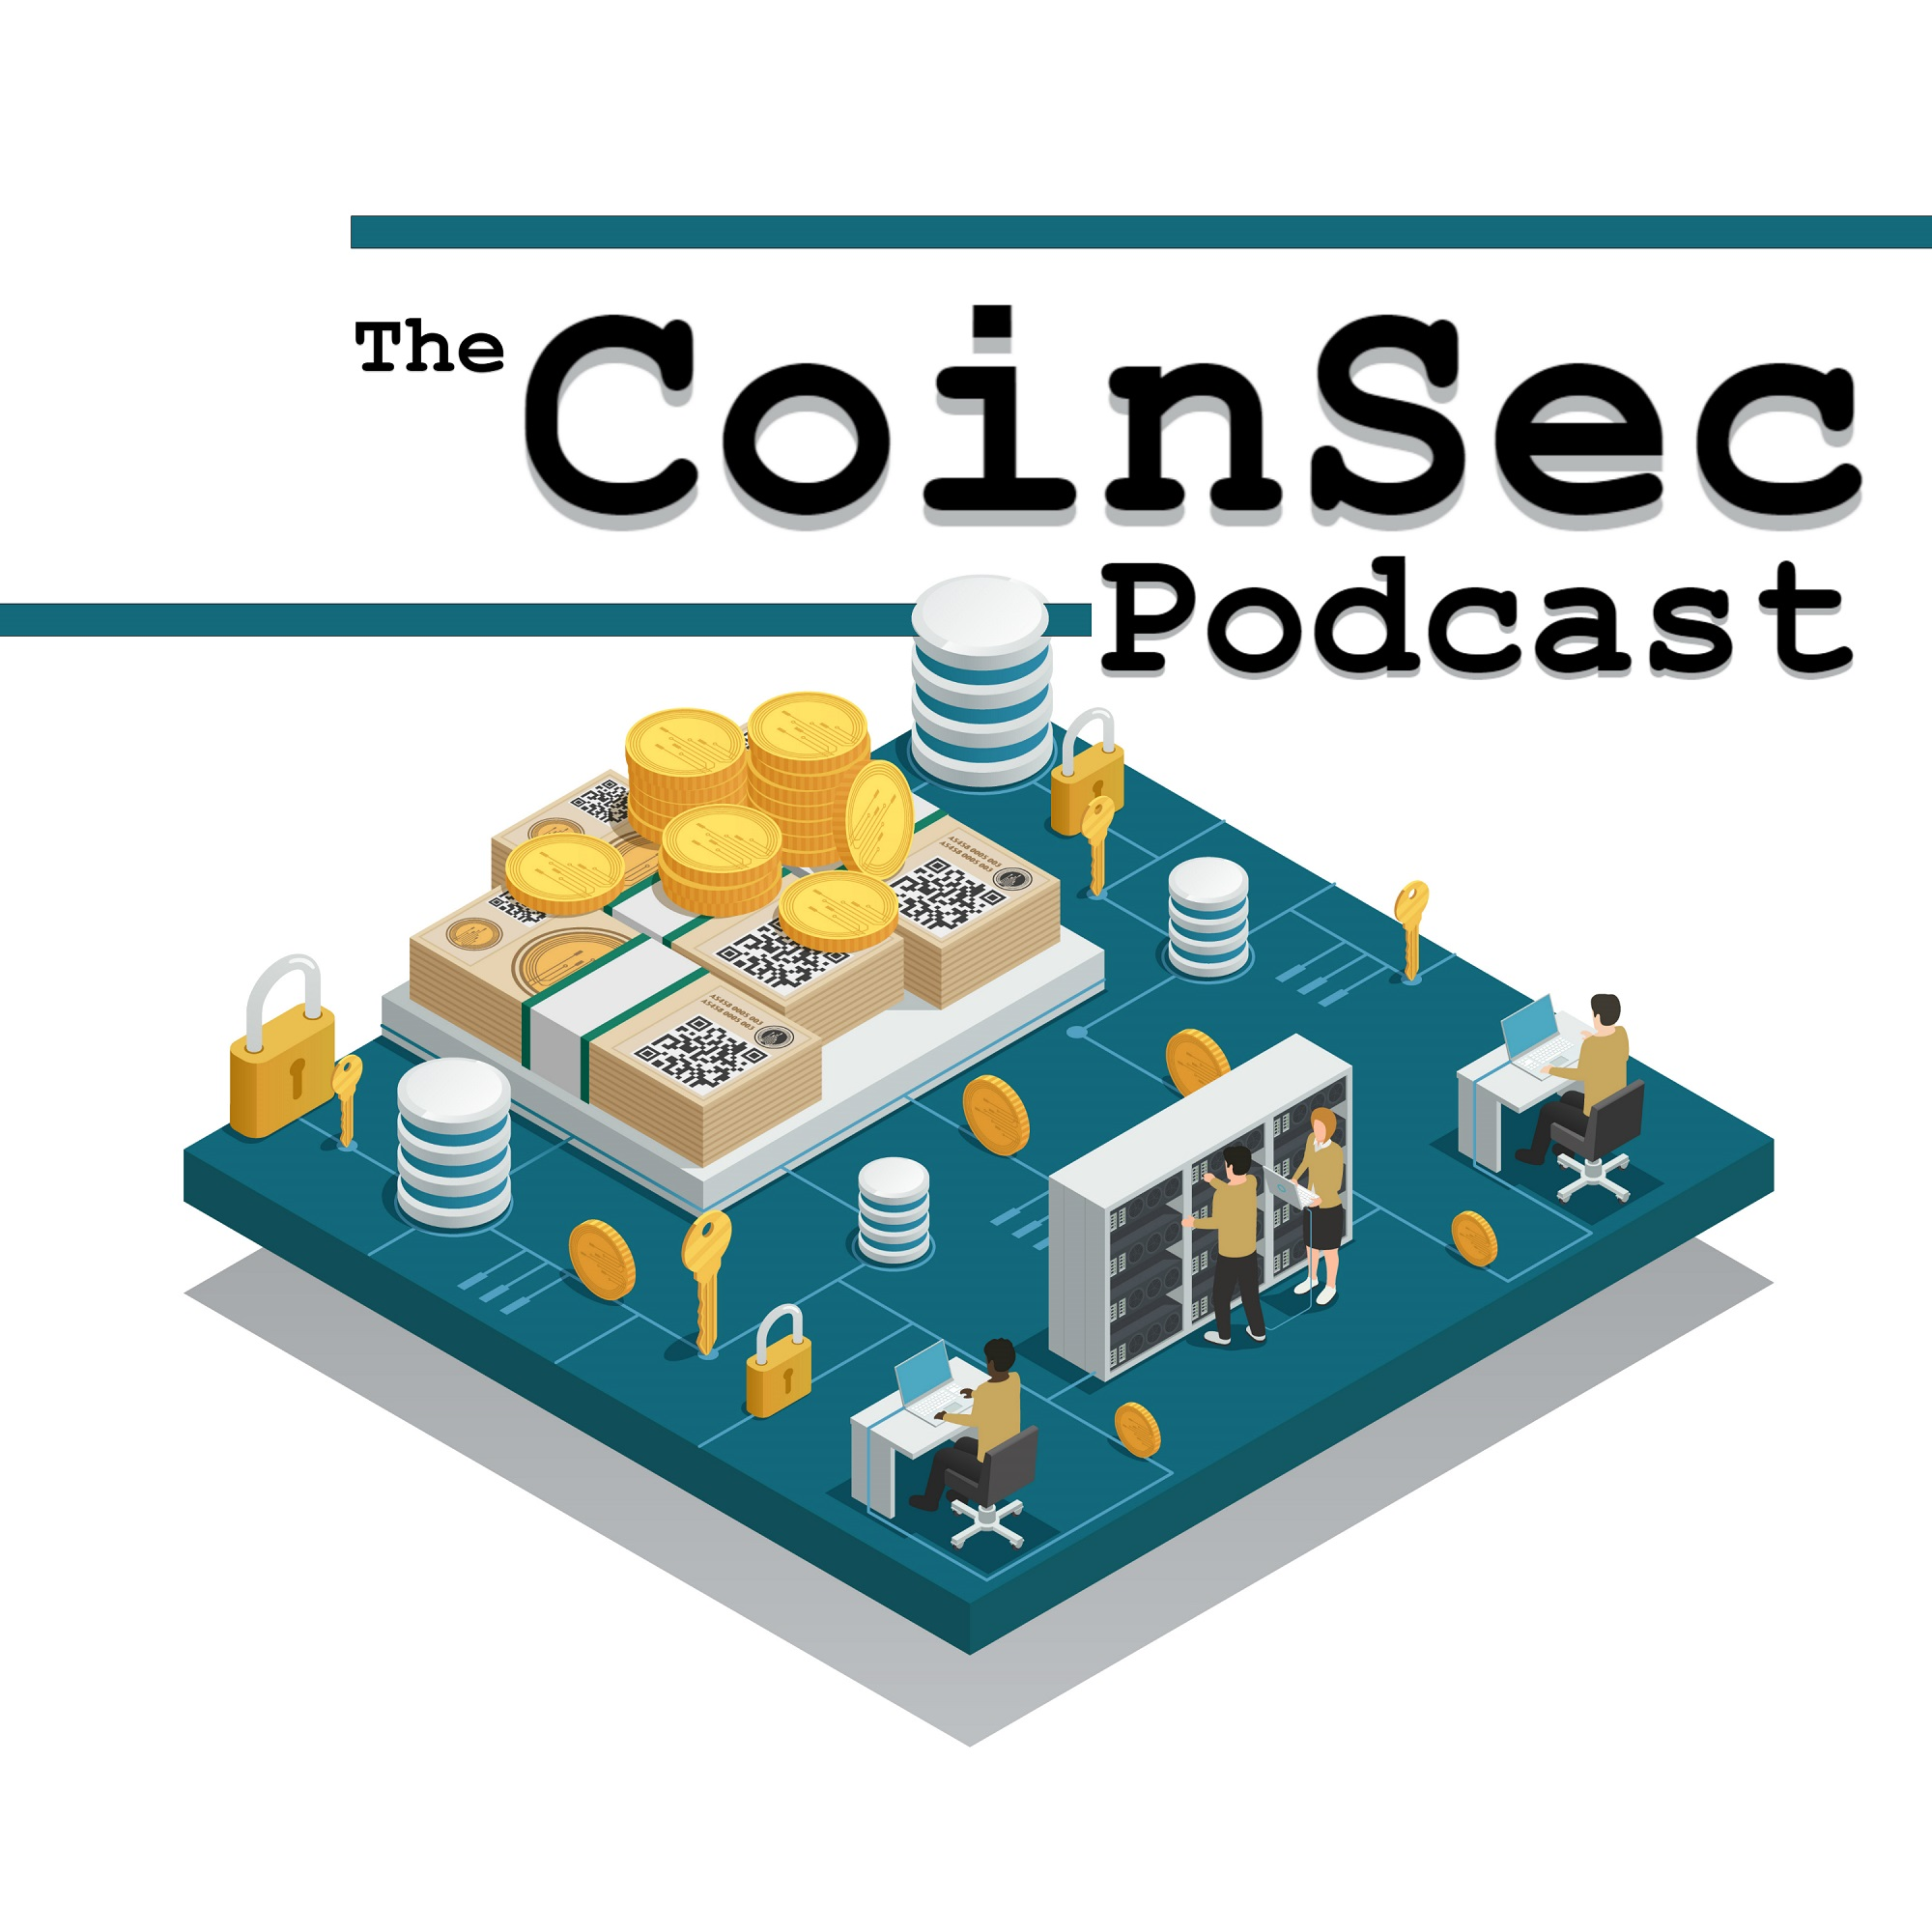 Episode 35: CoinSec 1-Year Anniversary Episode, FPGA's, ETC Attack, and Beam show art